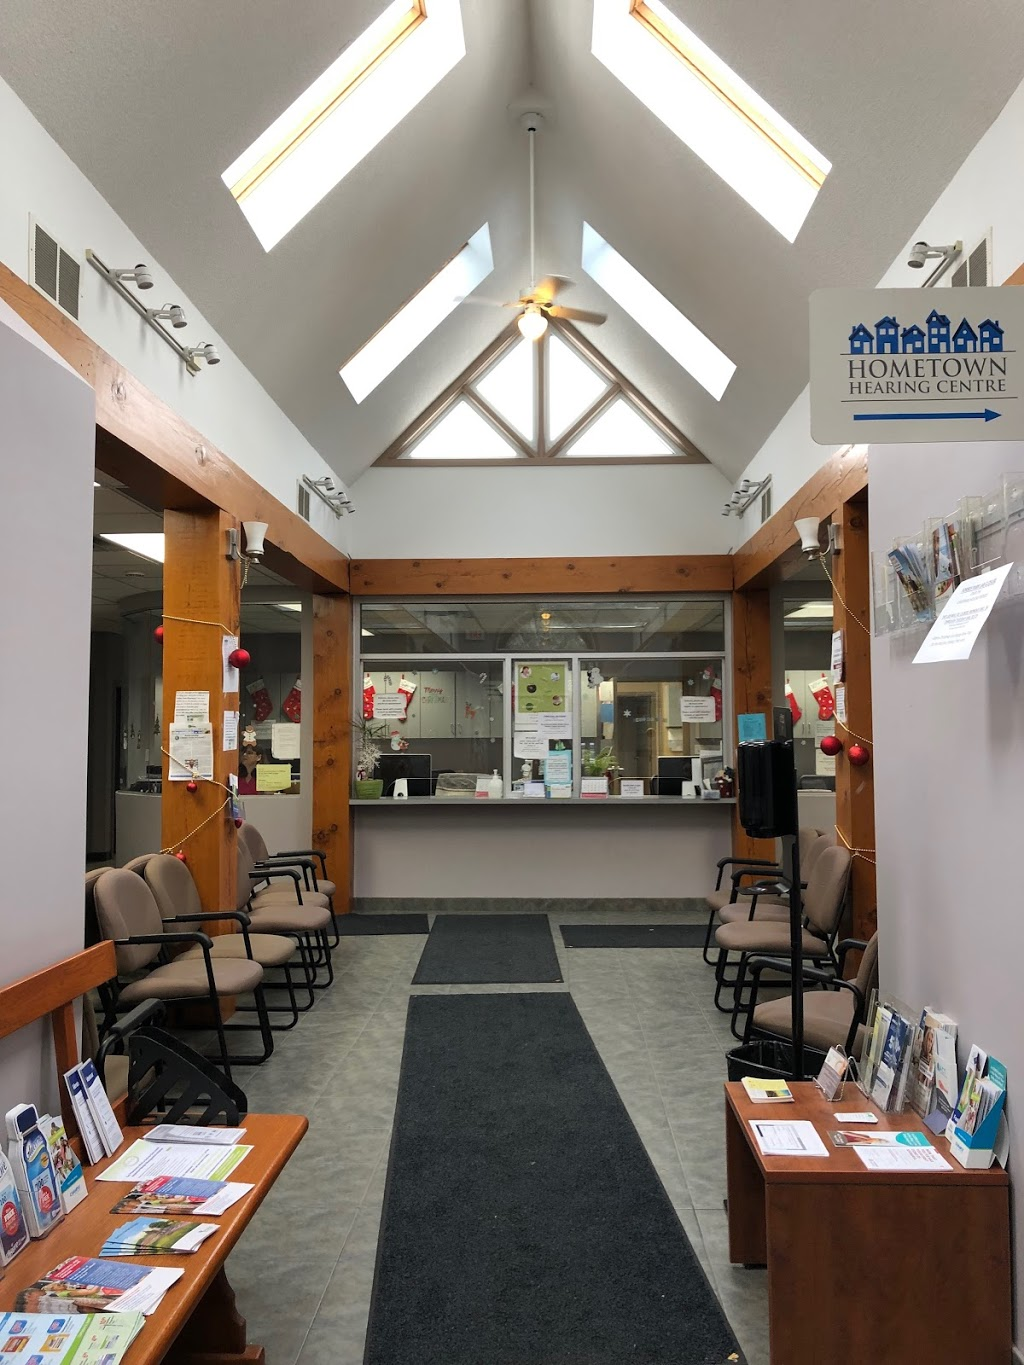 The Forbes Park Medical Centre | health | 26 Forbes St, Cambridge, ON N3C 2E2, Canada | 5196584615 OR +1 519-658-4615